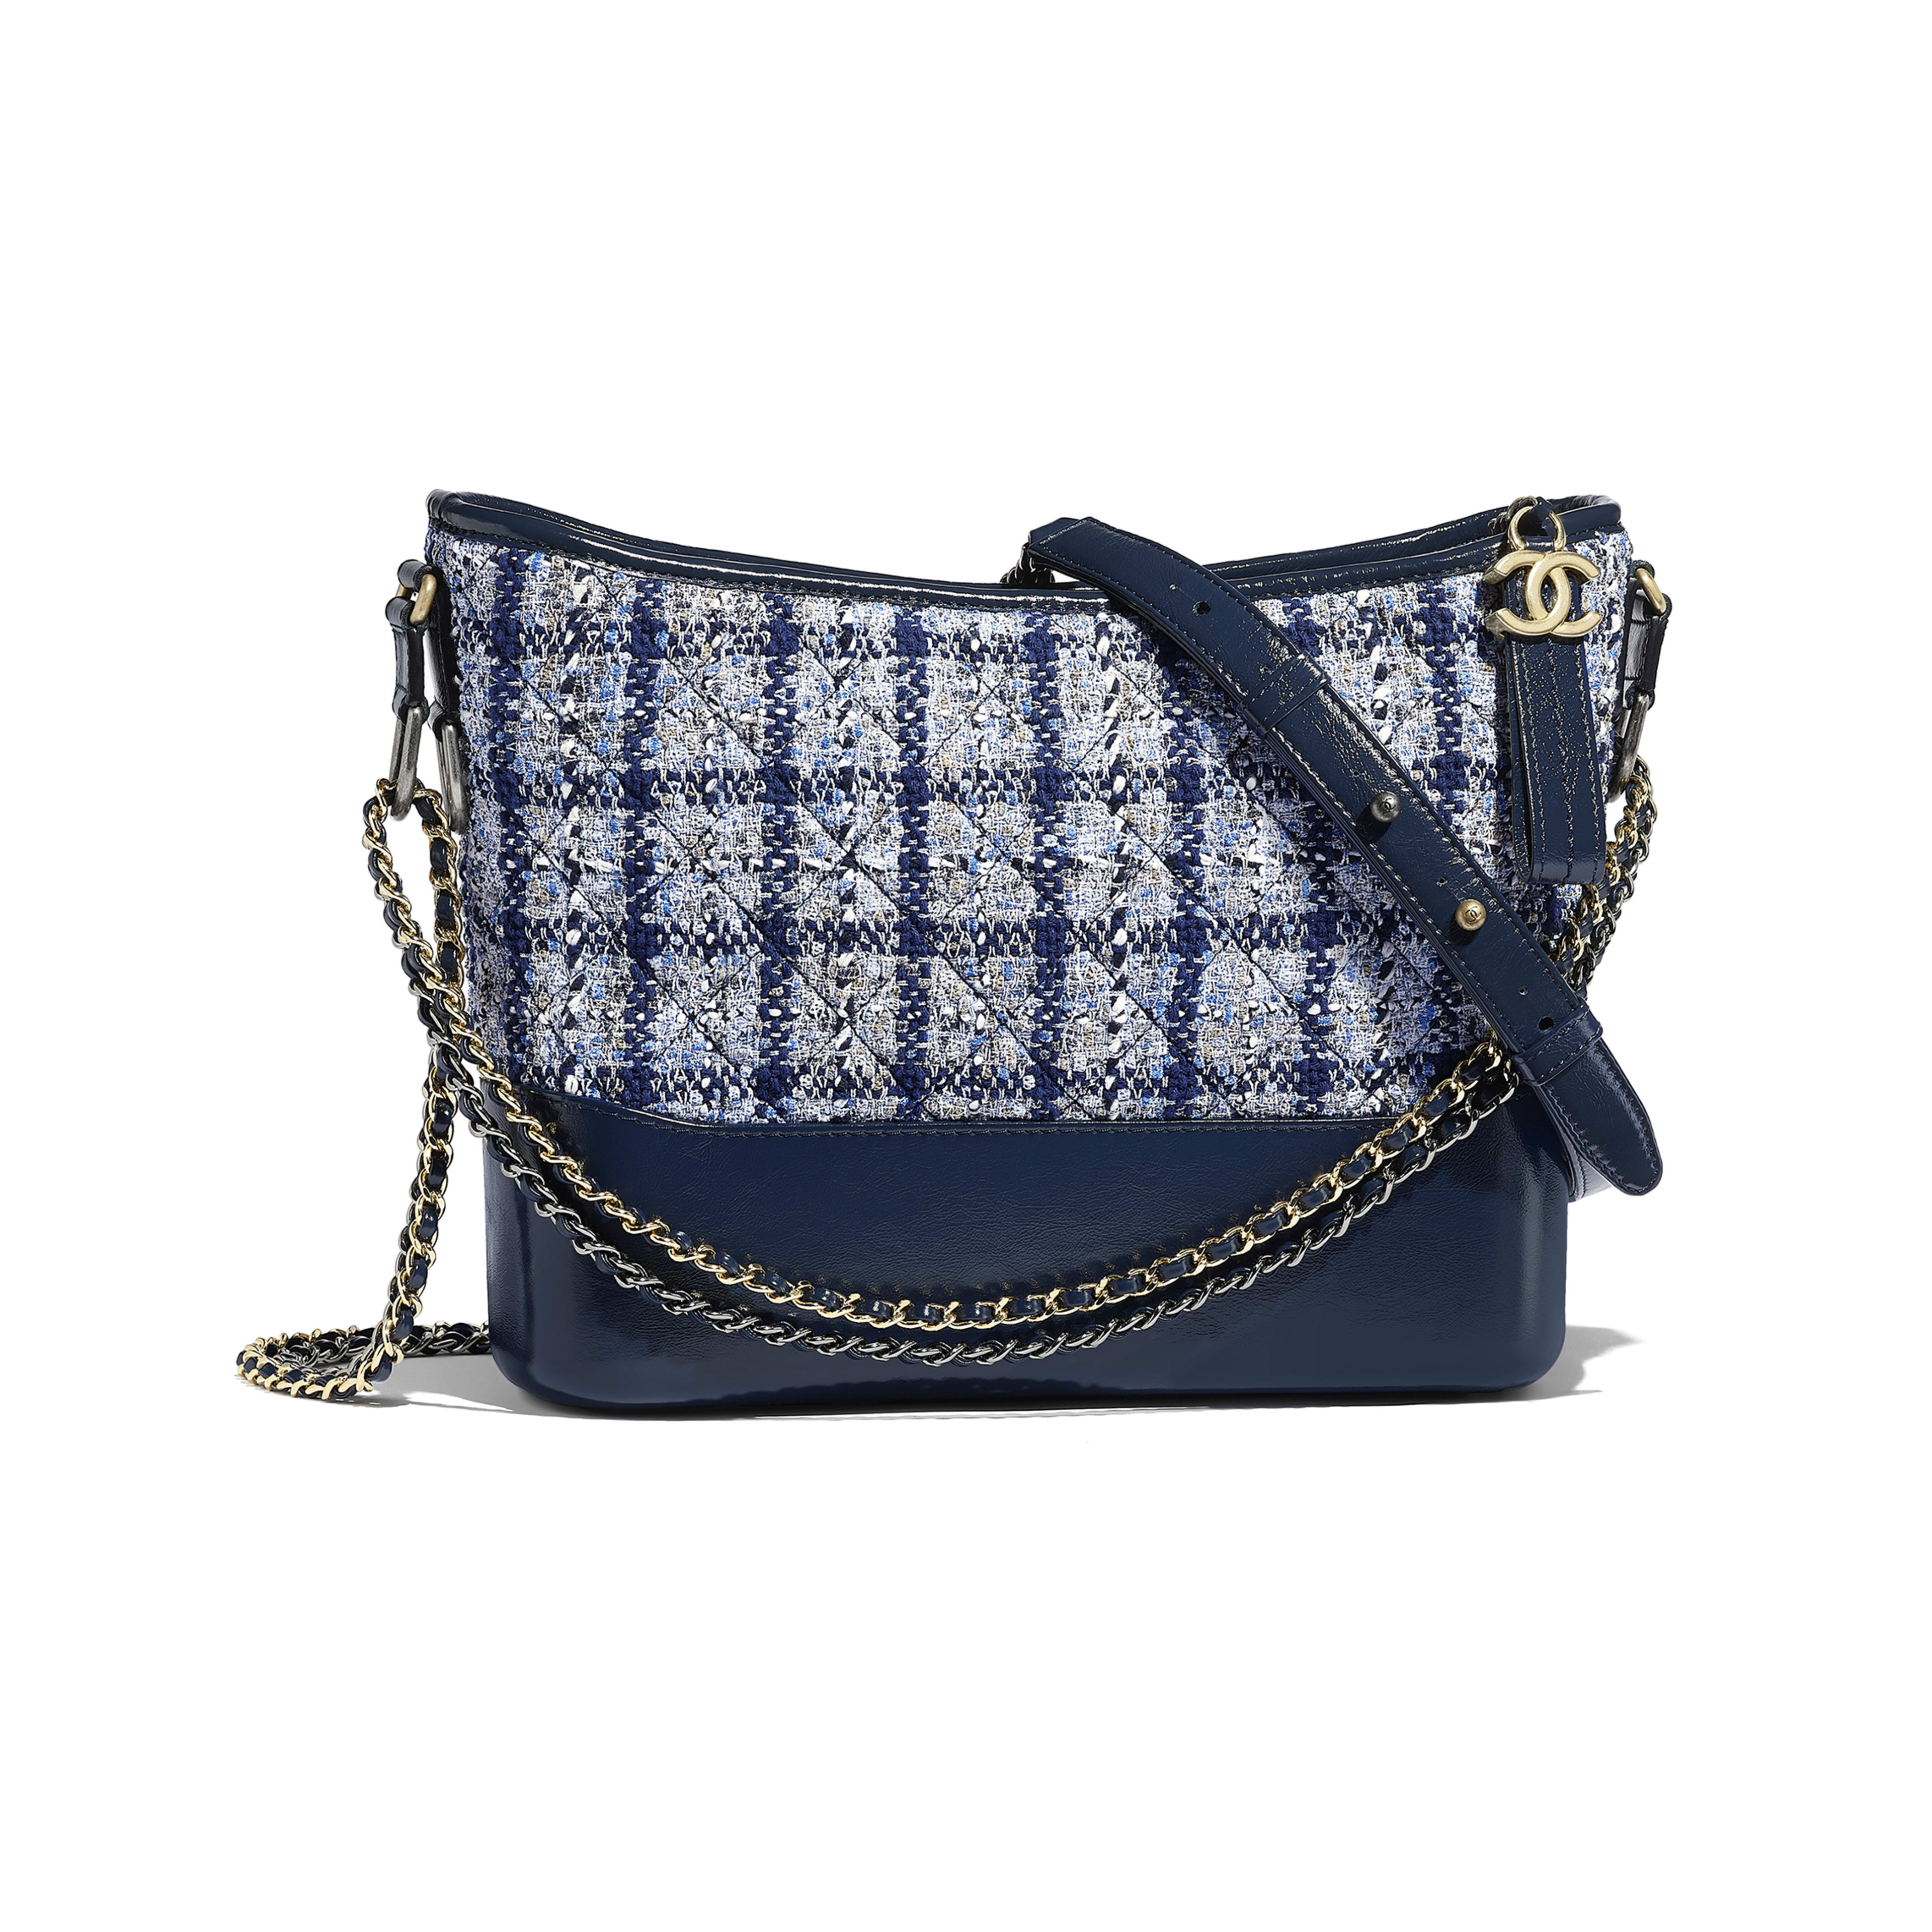 4a90f4f97374 CHANEL CHANEL S GABRIELLE Hobo Bag - Navy ...